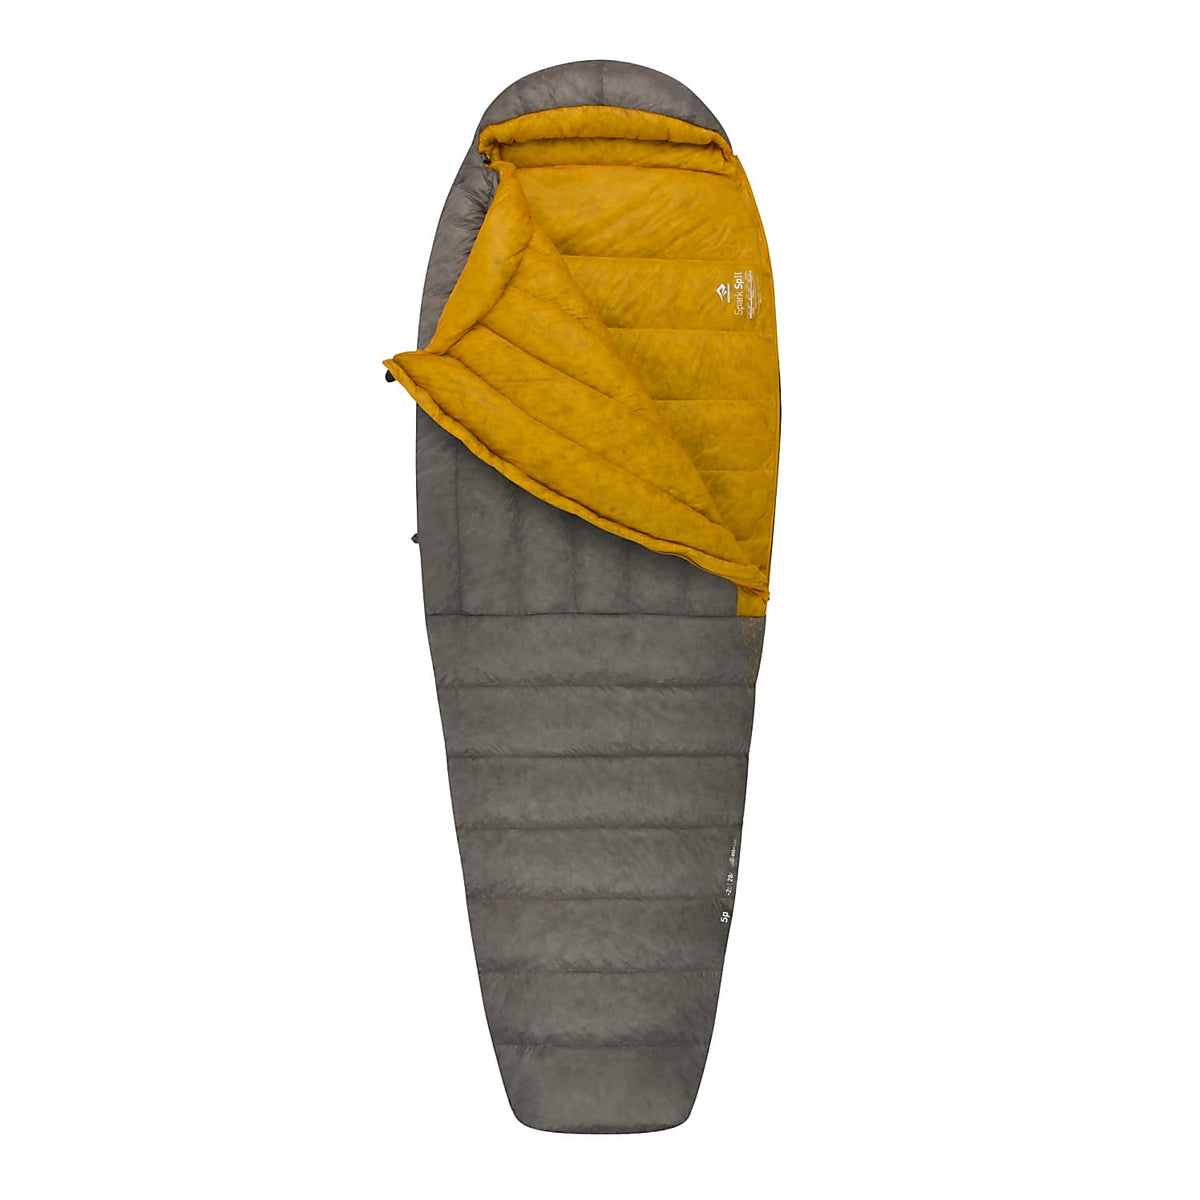 Sea to Summit Spark II Long sleeping bag shown partially open